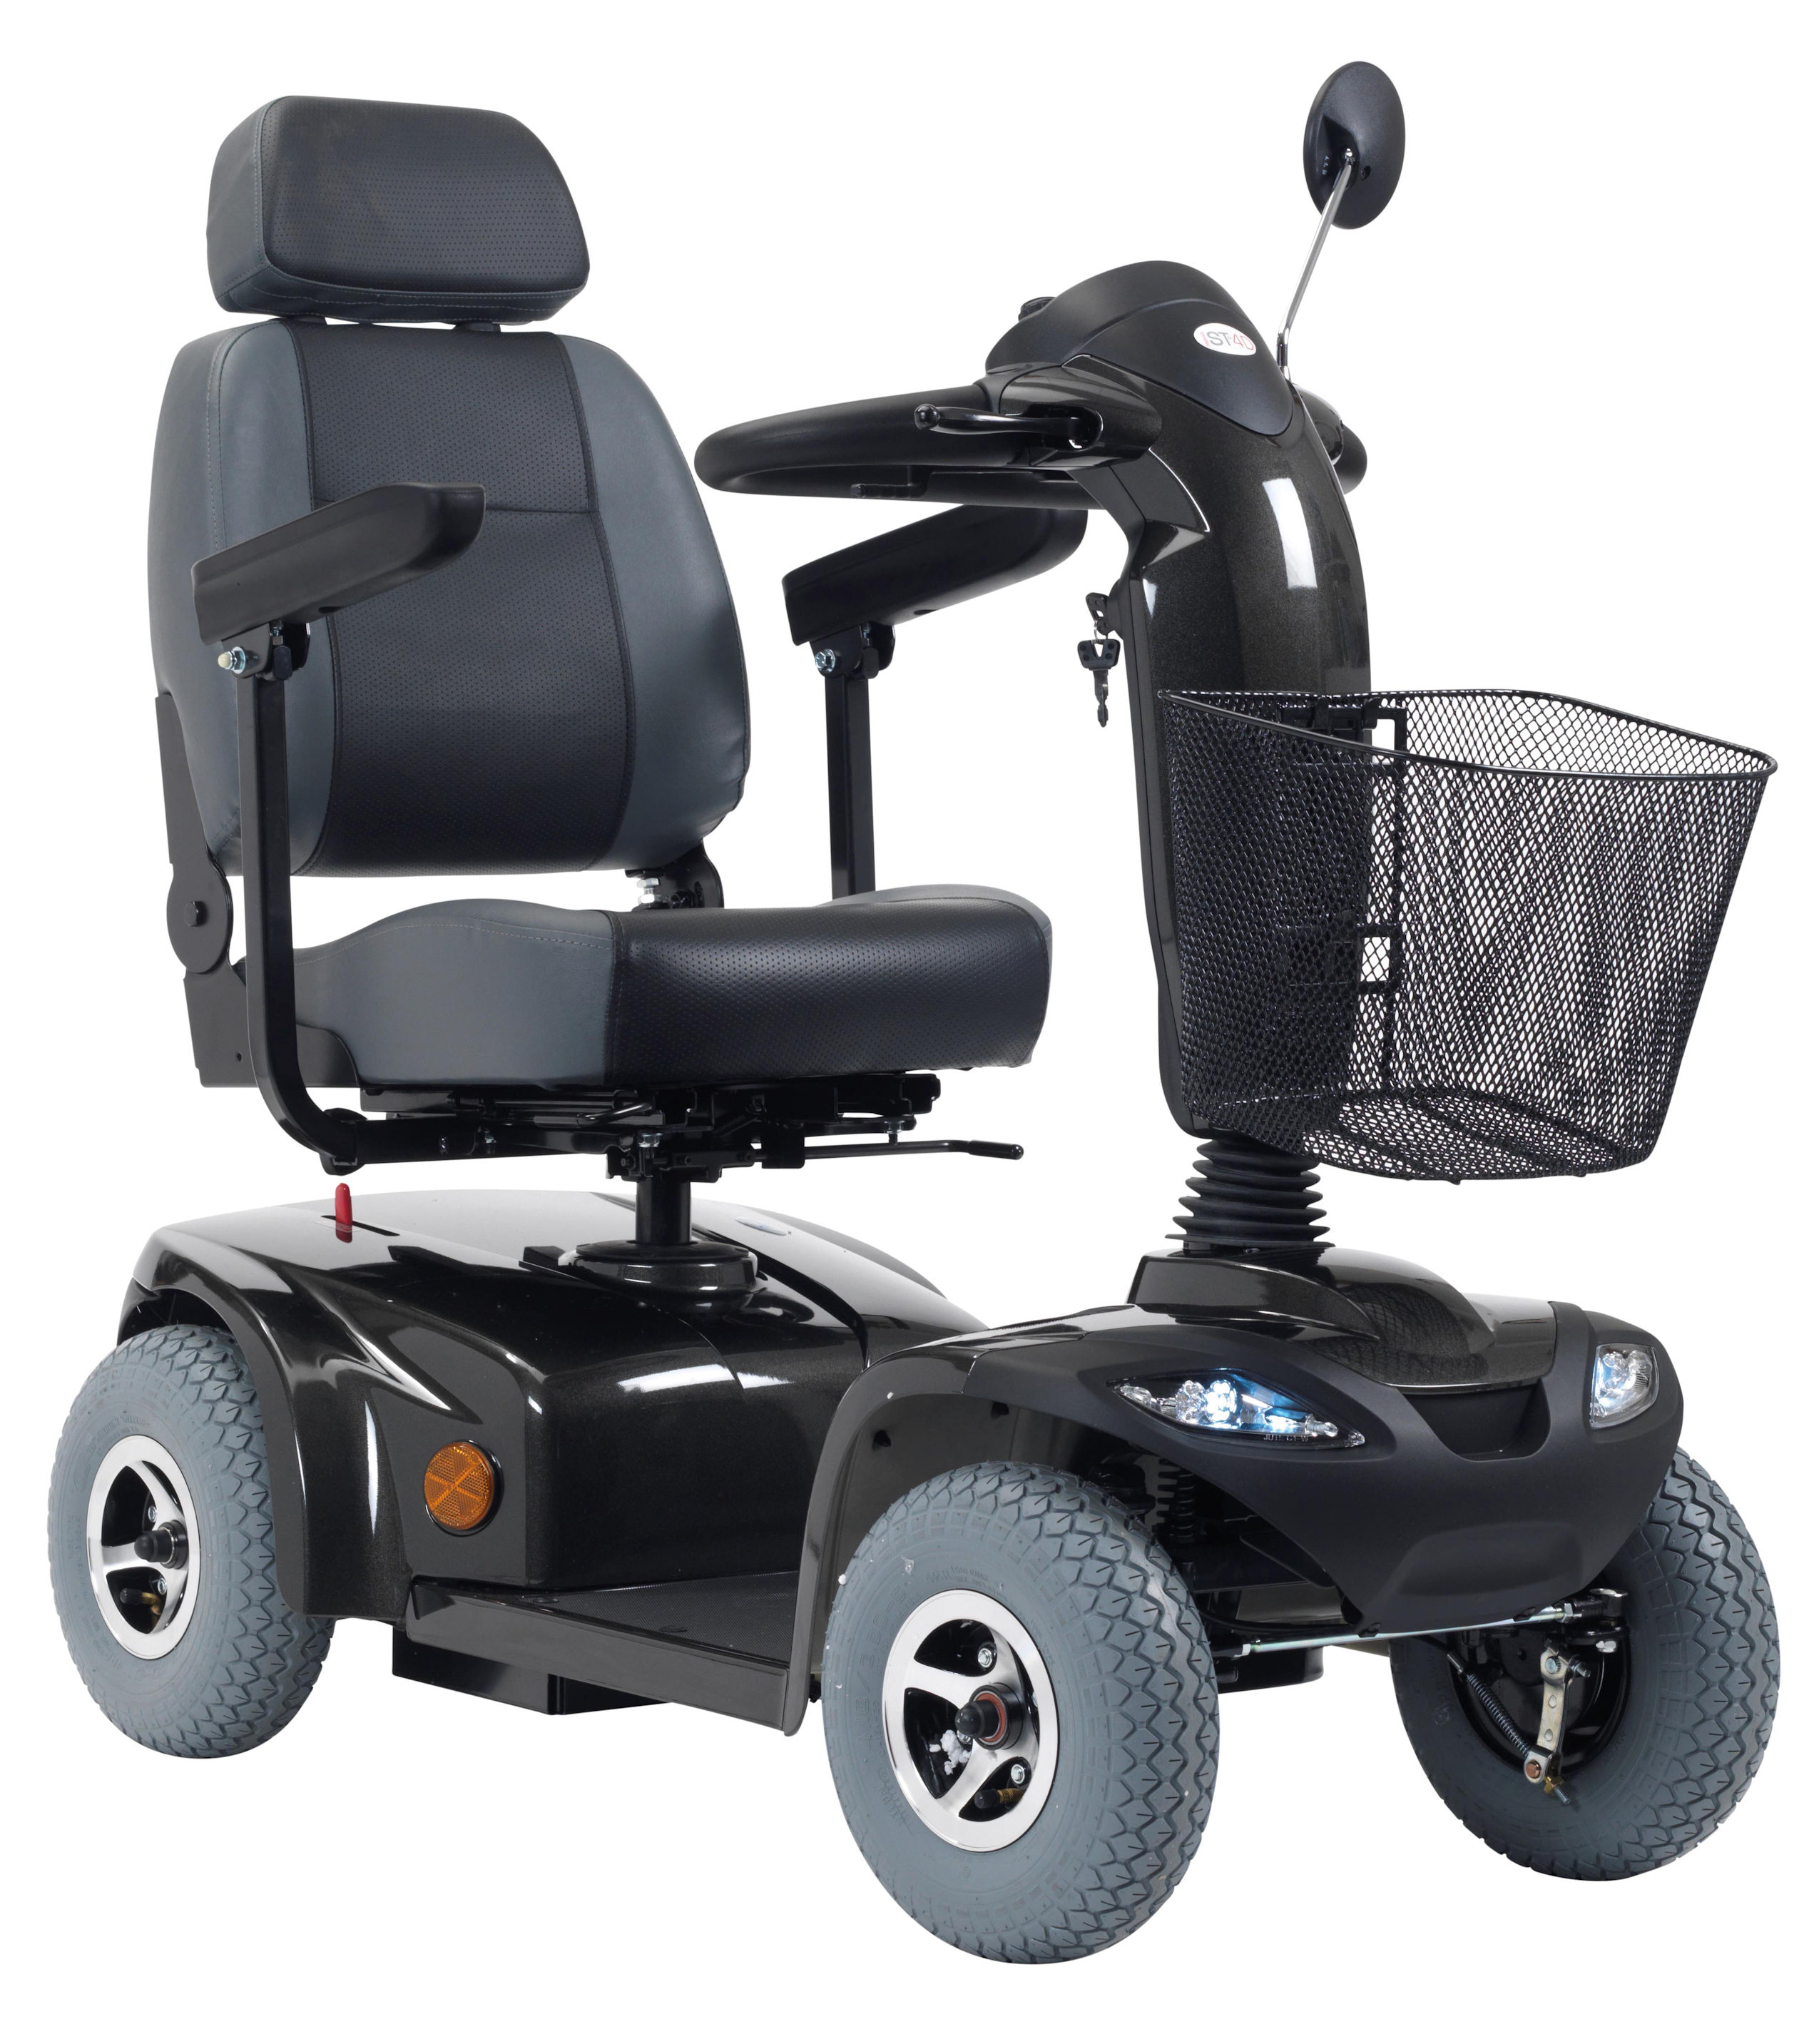 Drive ST4D Mobility Scooter in Anthracite Grey